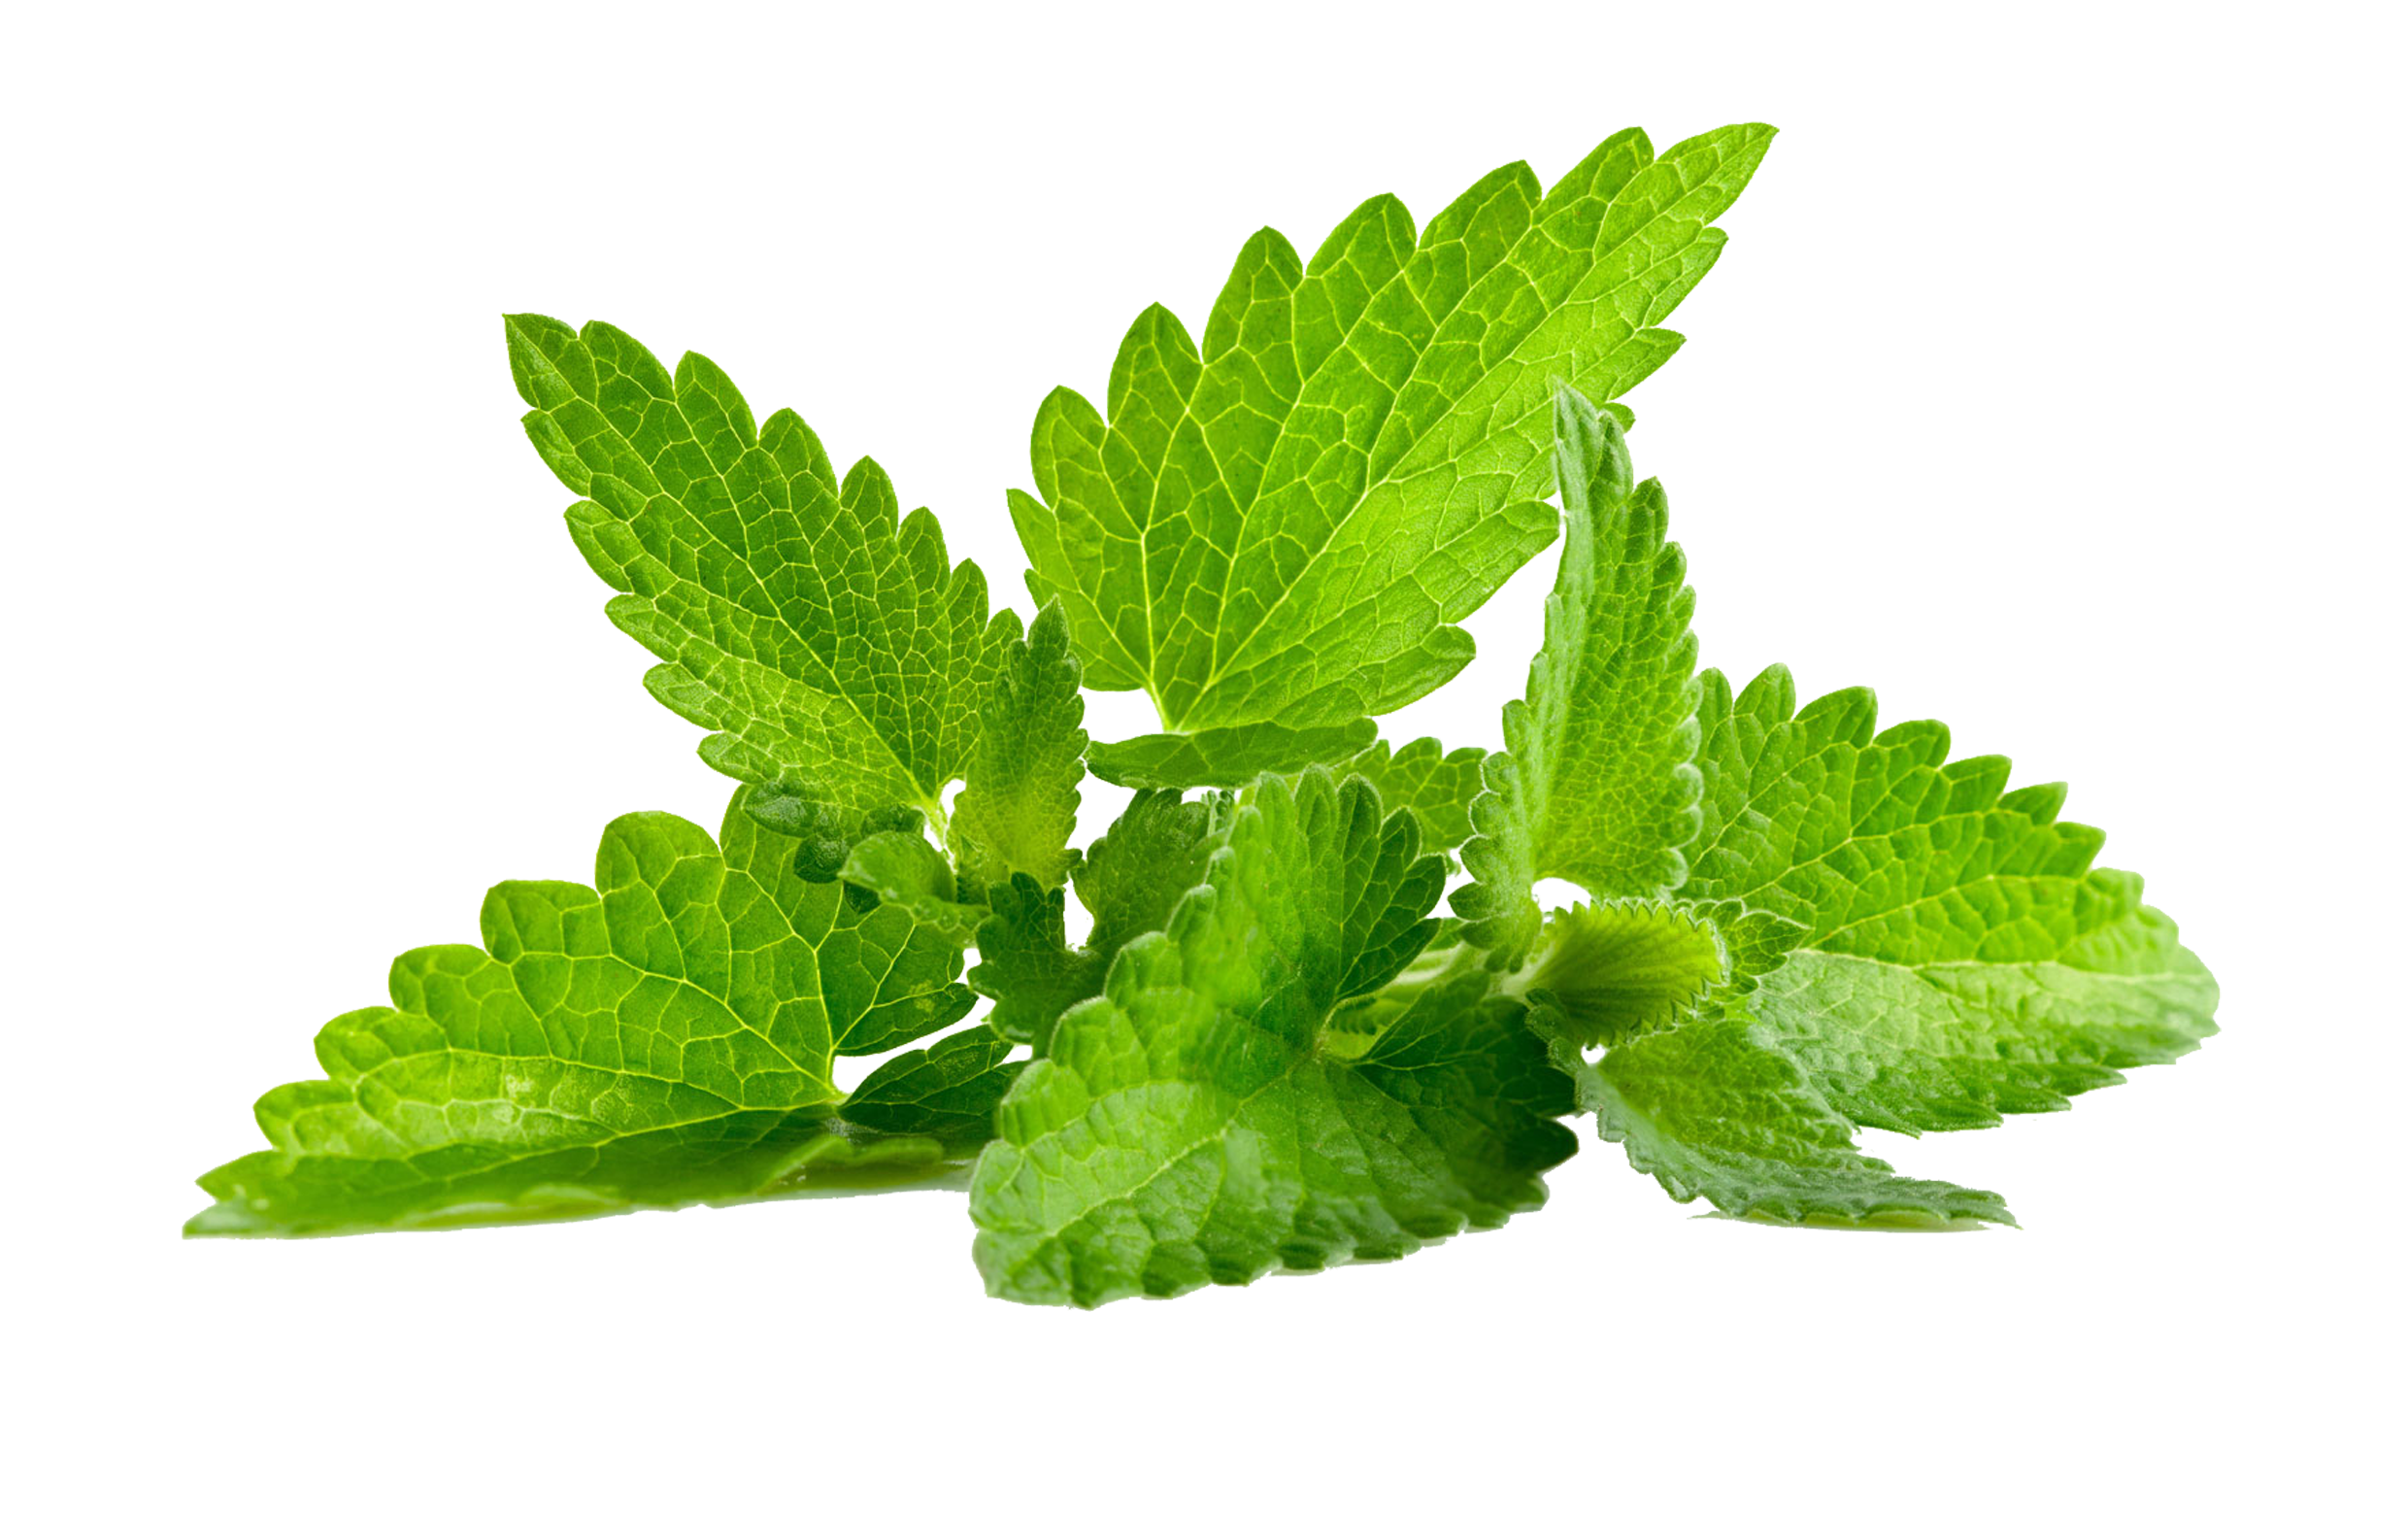 Mint png. Images all